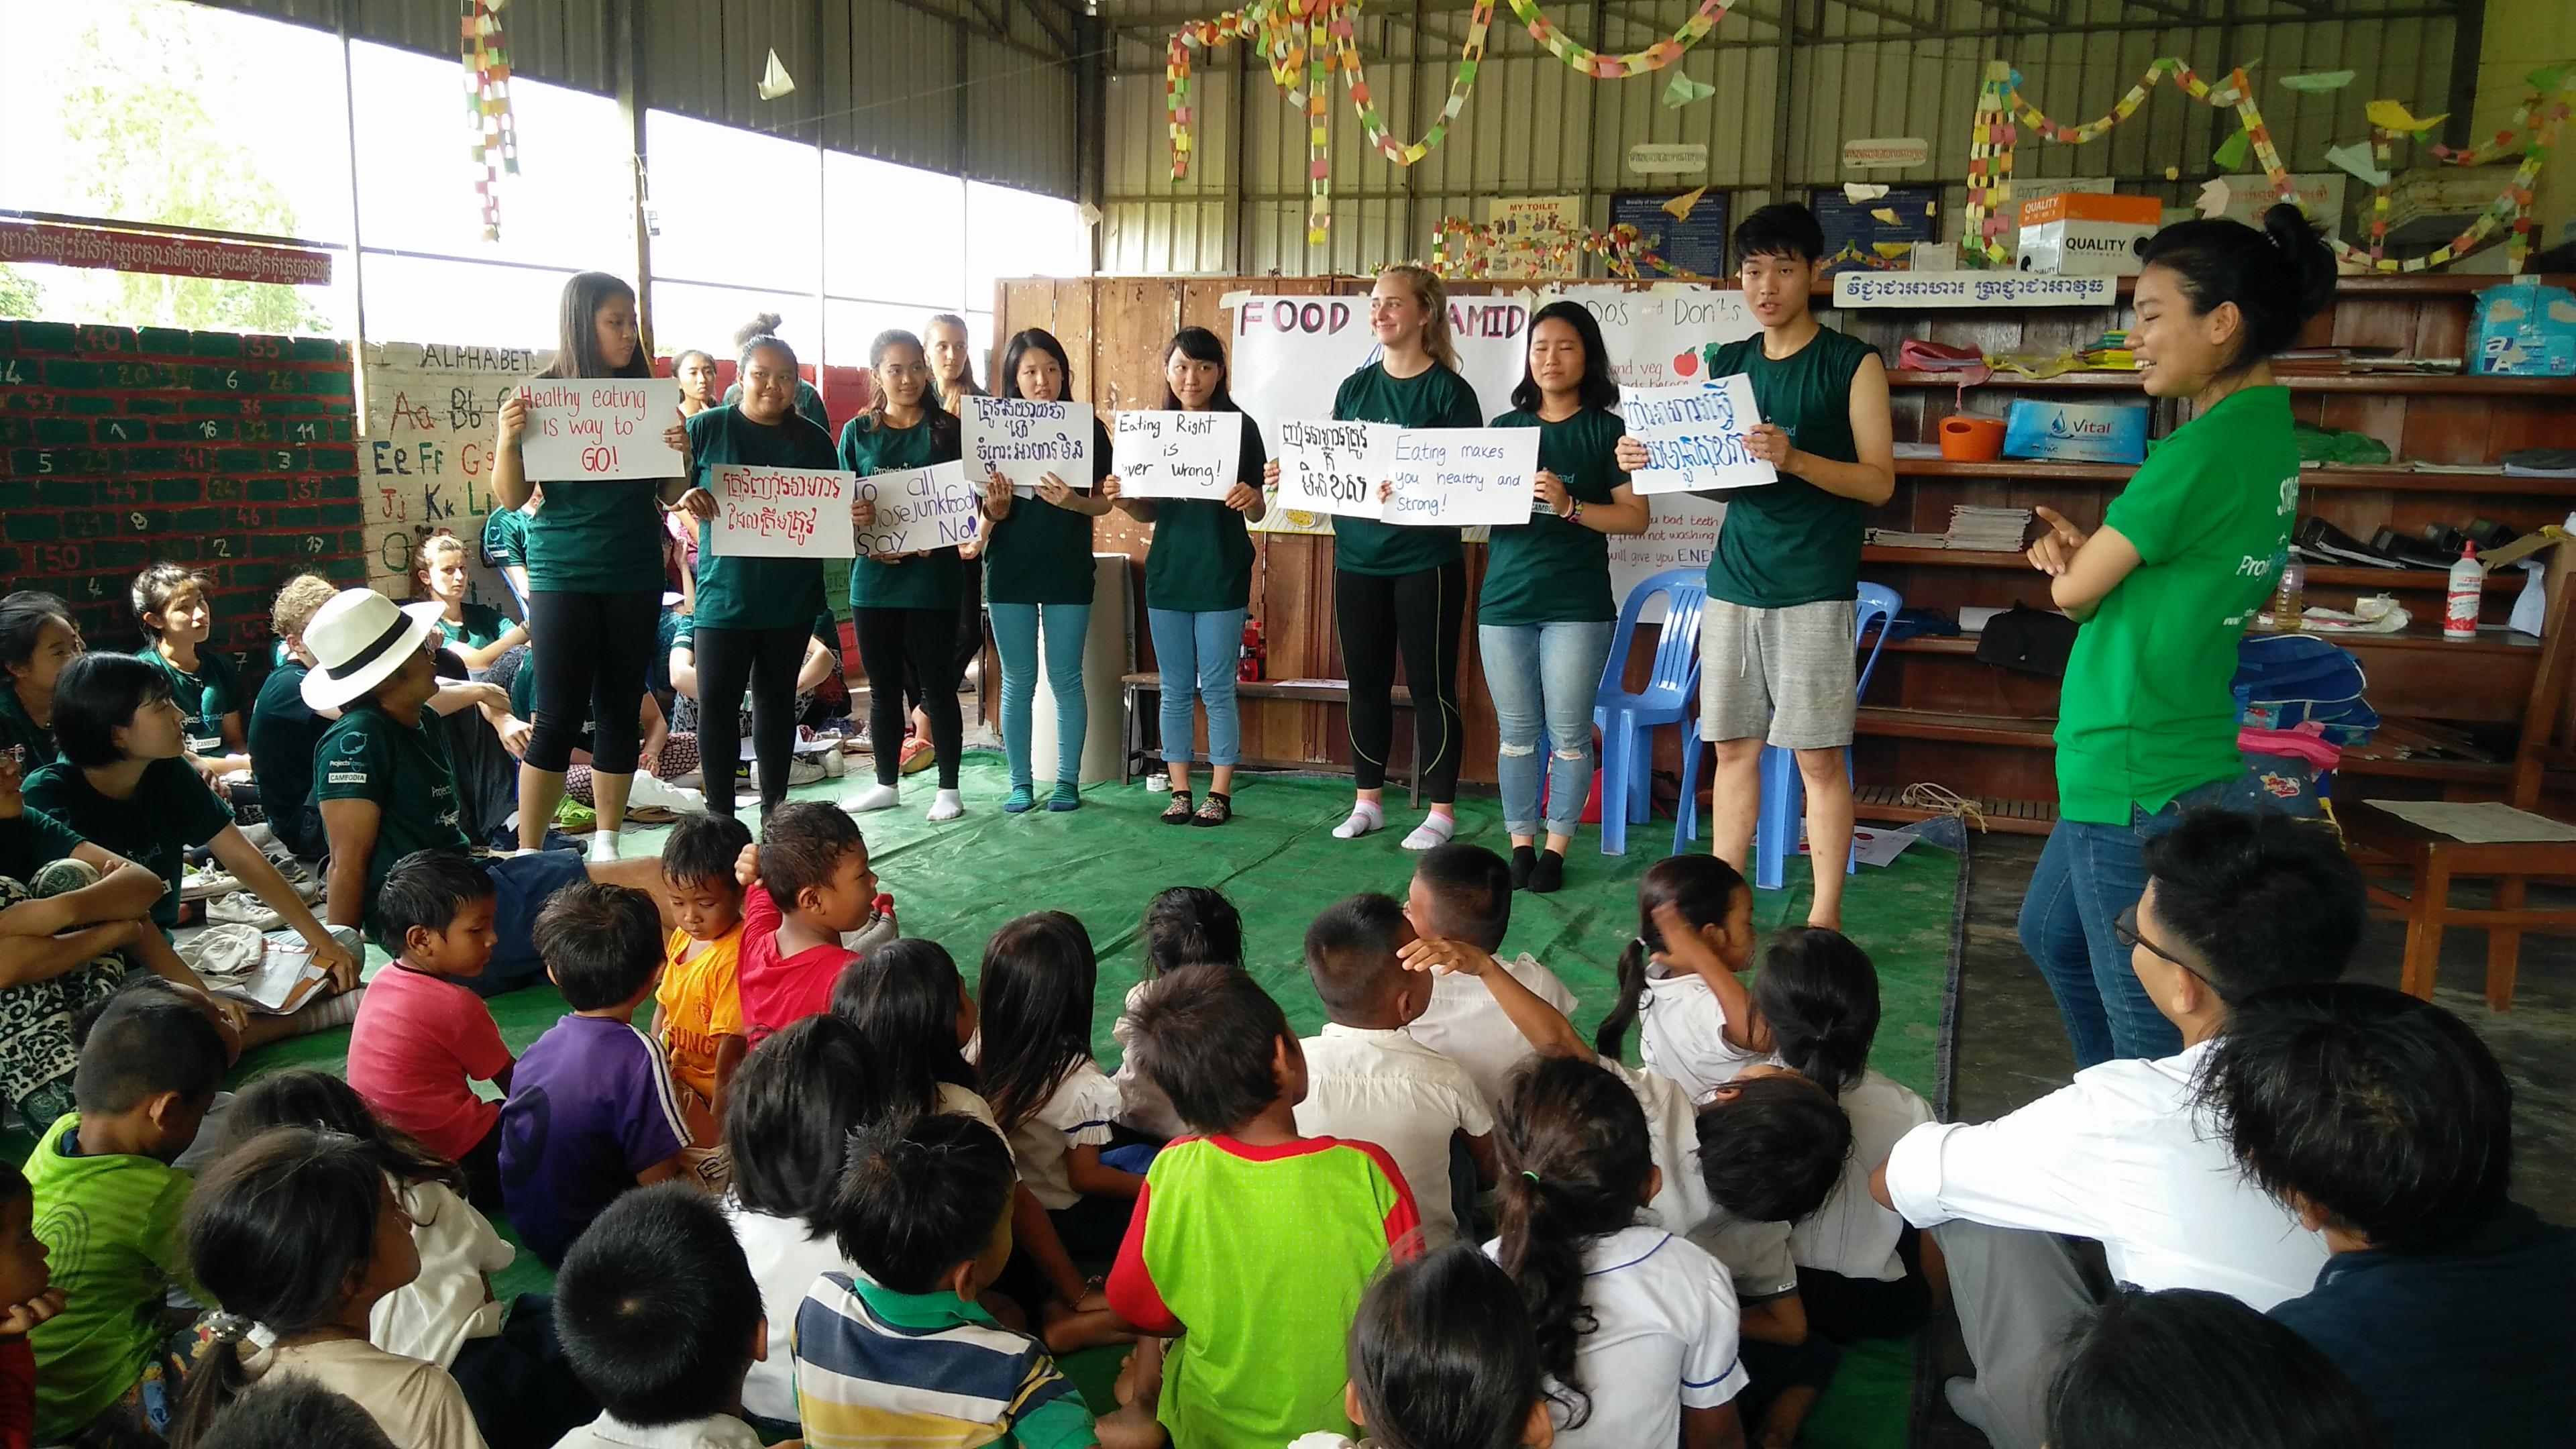 Interns run a healthy eating campaign as part of their Public Health work for teenagers in Cambodia.